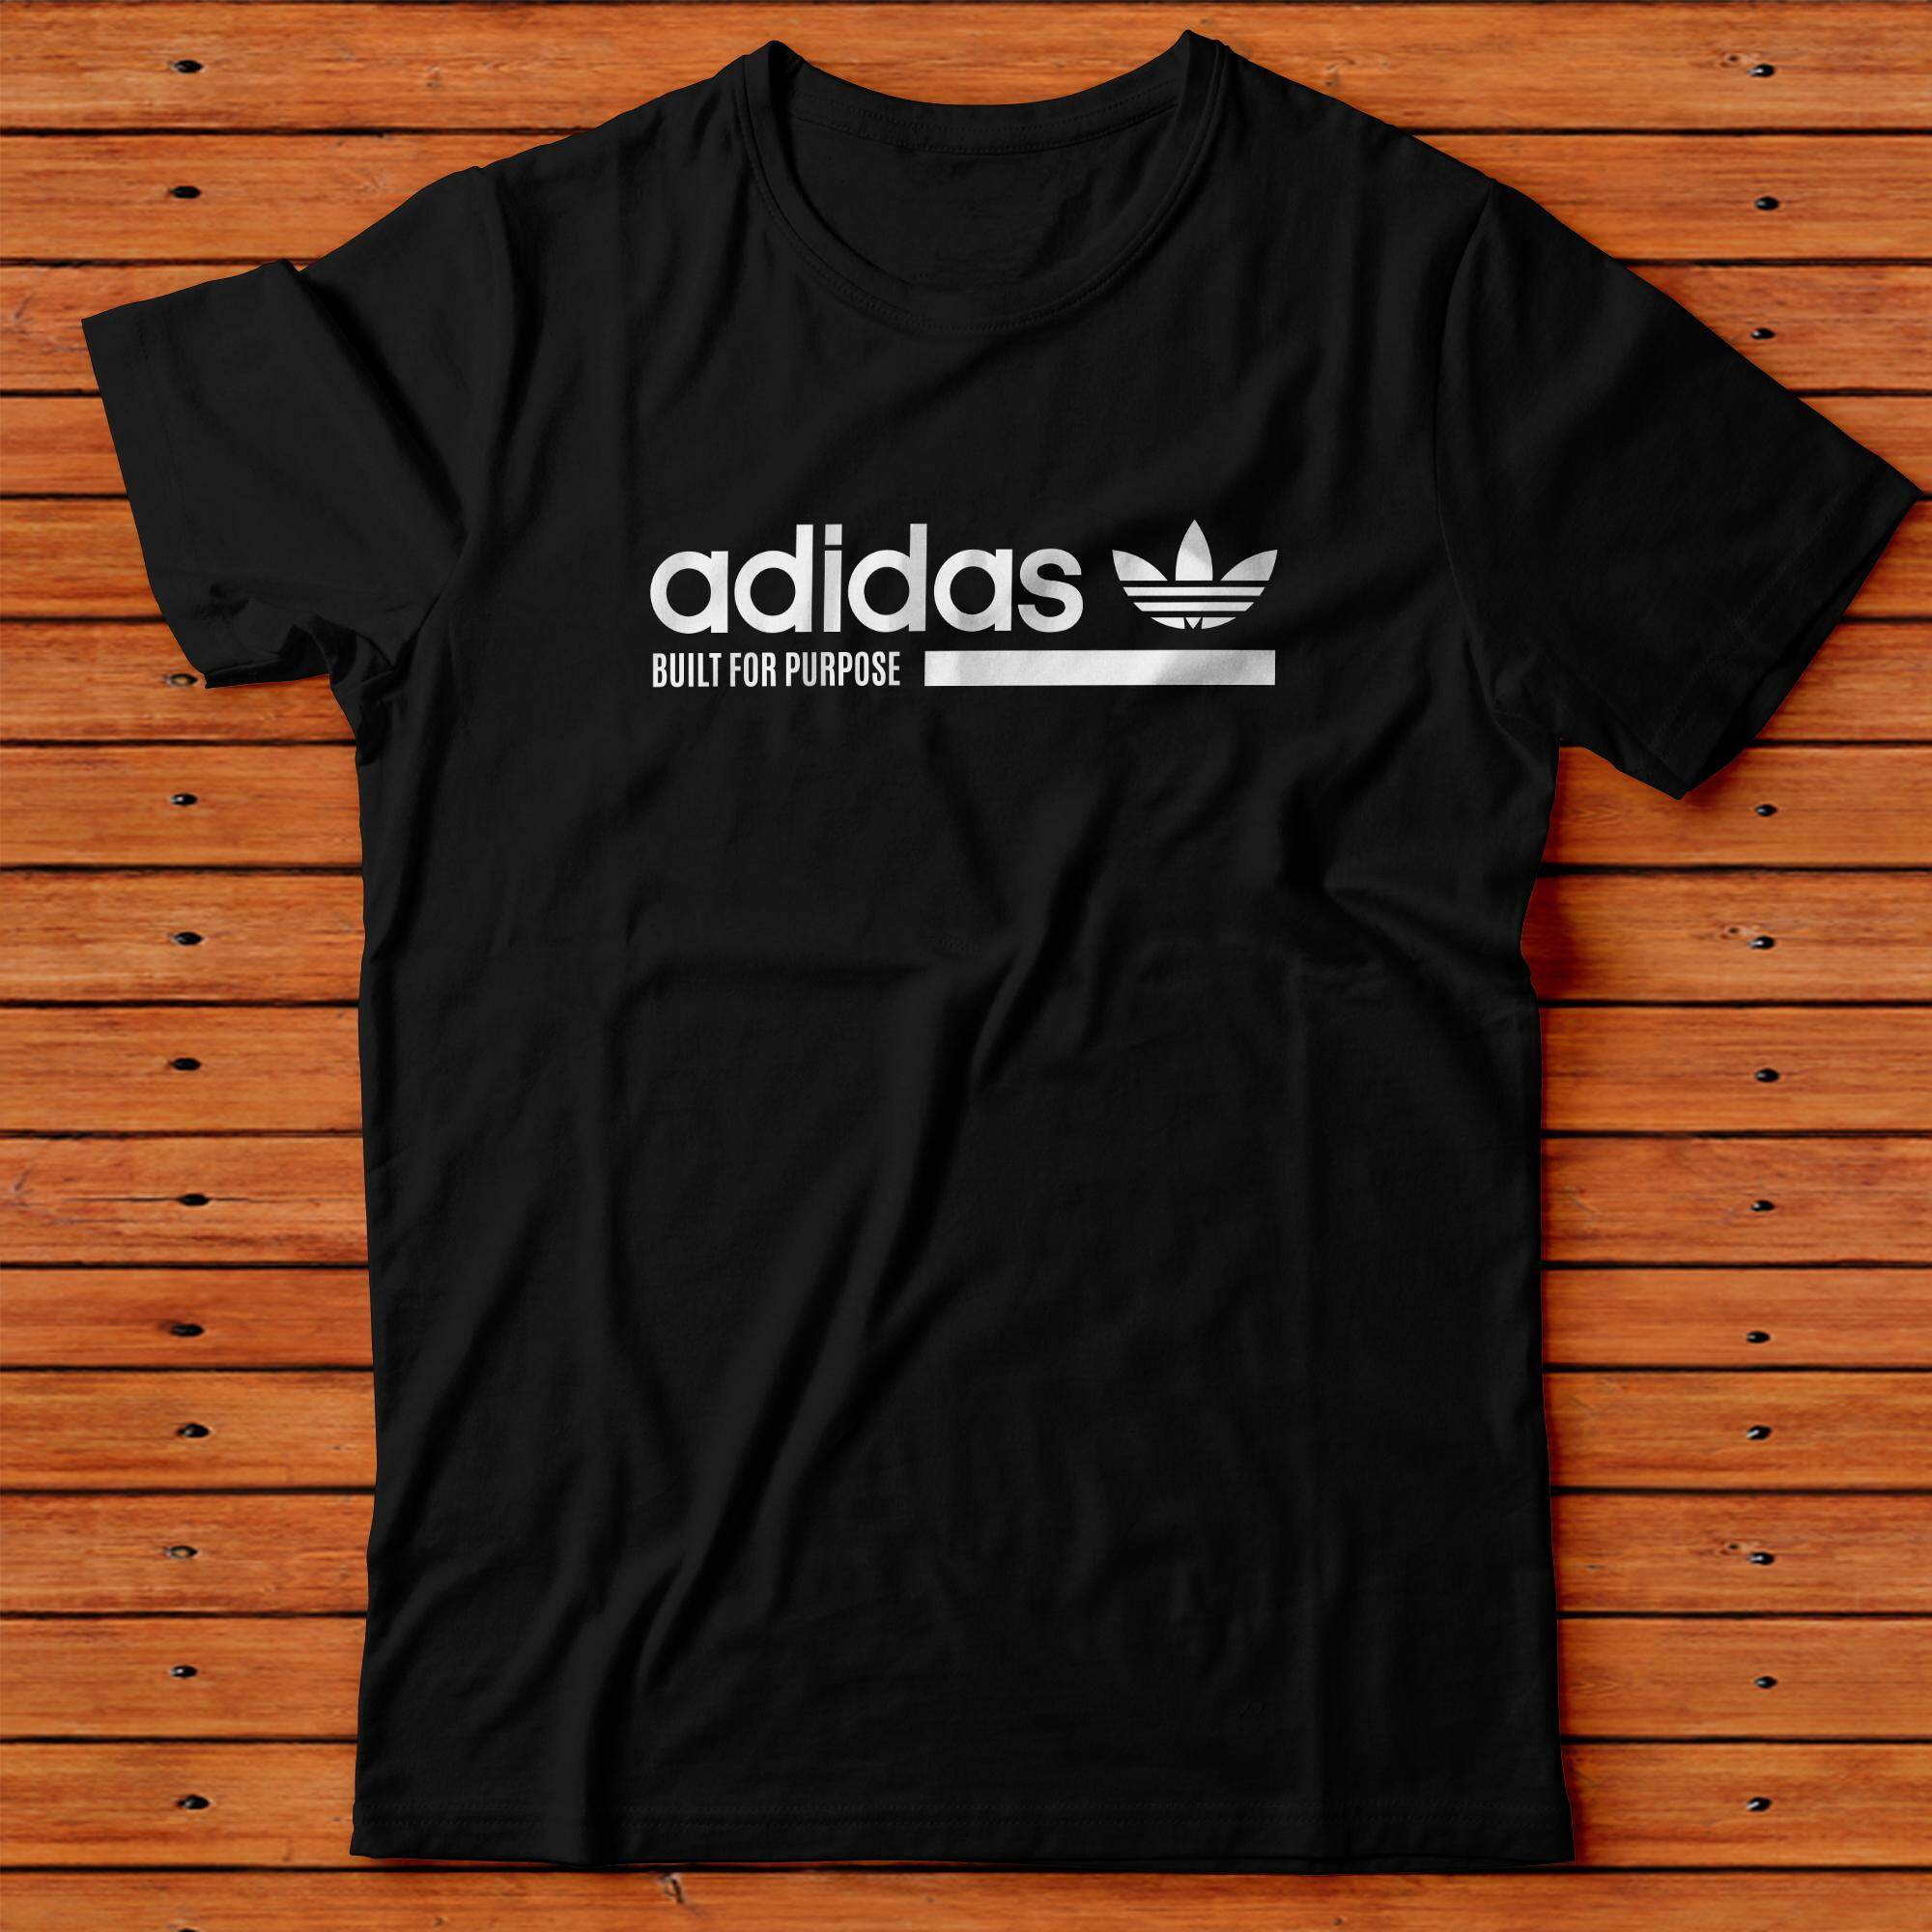 Popular T Shirts For Men The Best Prices In Malaysia Tendencies Tshirt Born To Fire Hitam S Adidas Shirt Cotton Unisex Vinyl Printed